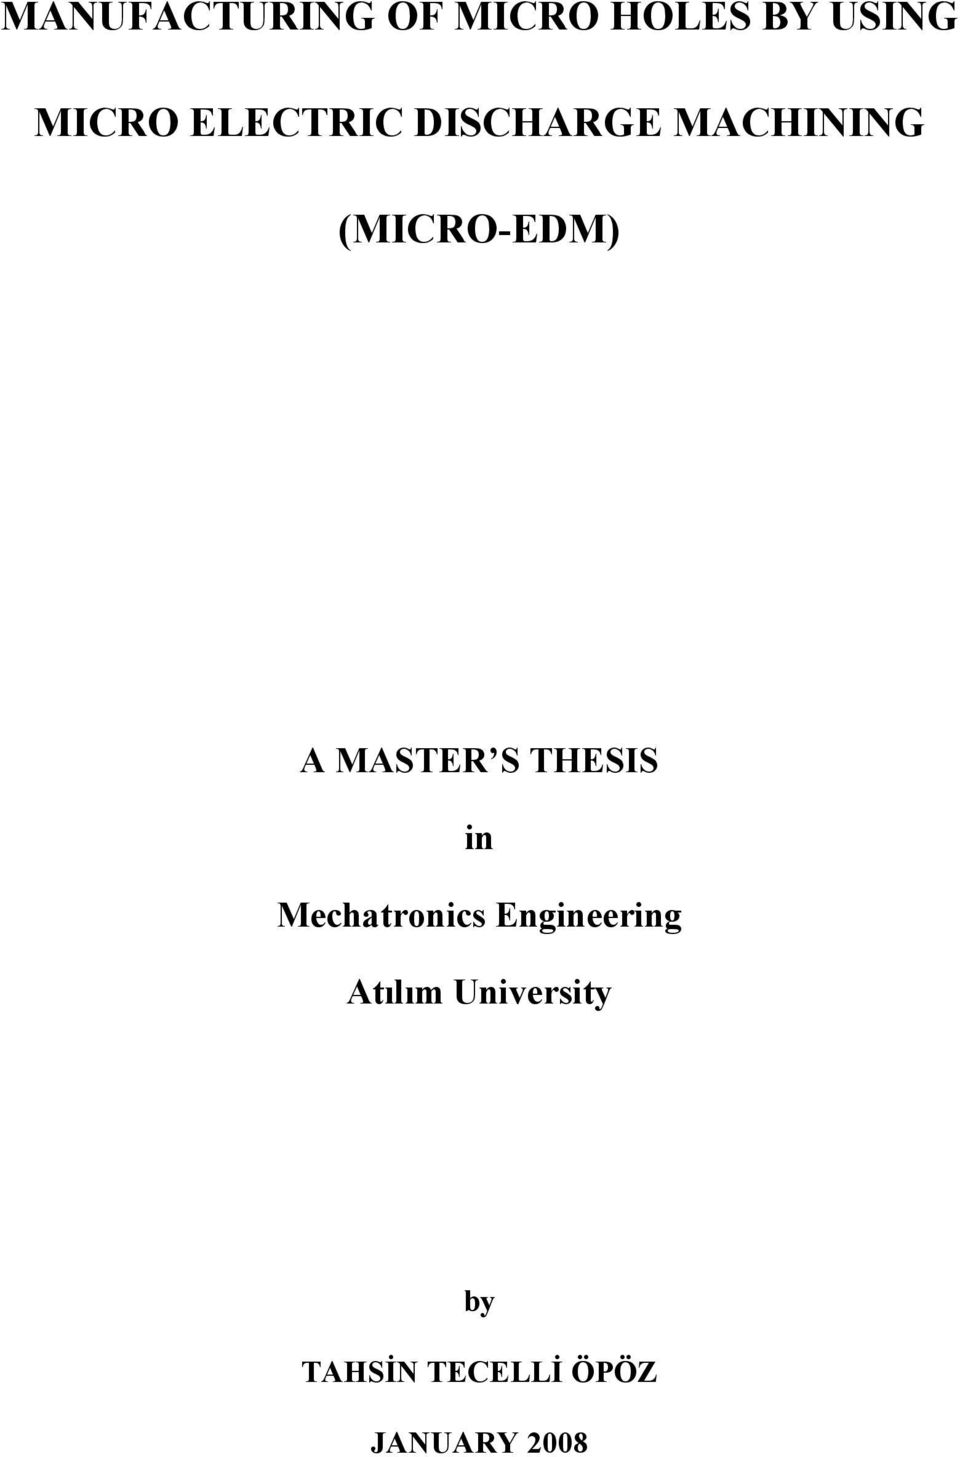 MASTER S THESIS in Mechatronics Engineering